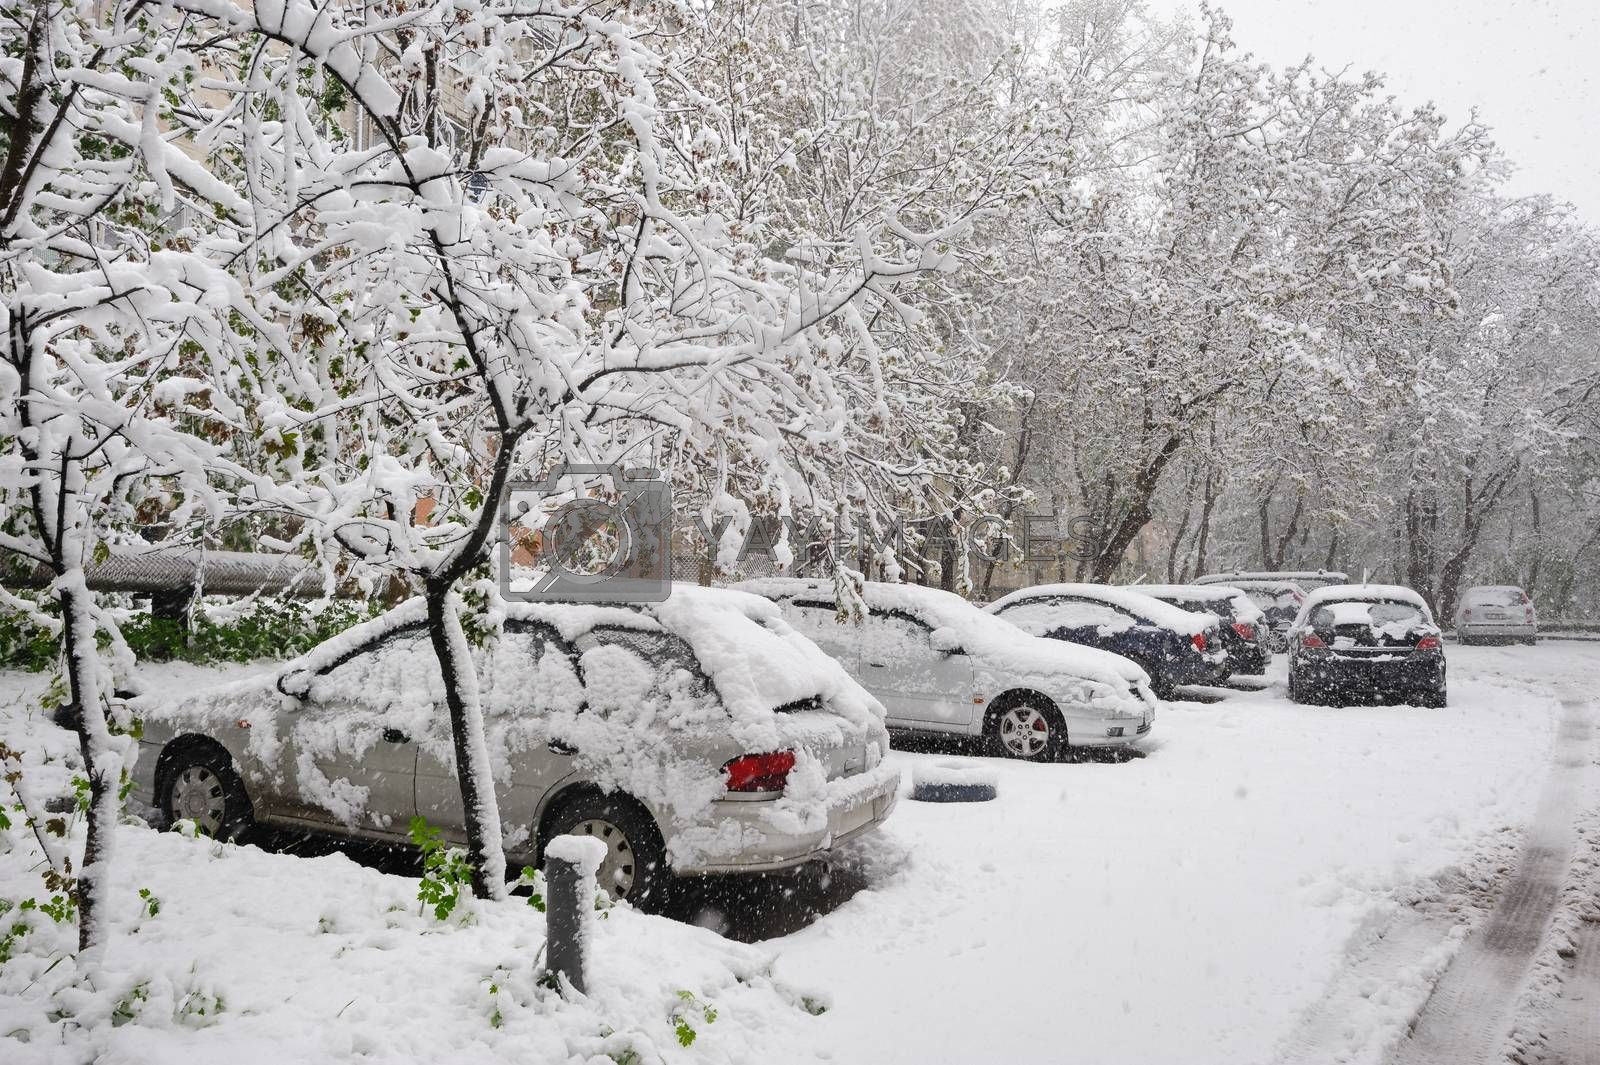 snow covered cars at winter parking and trees around